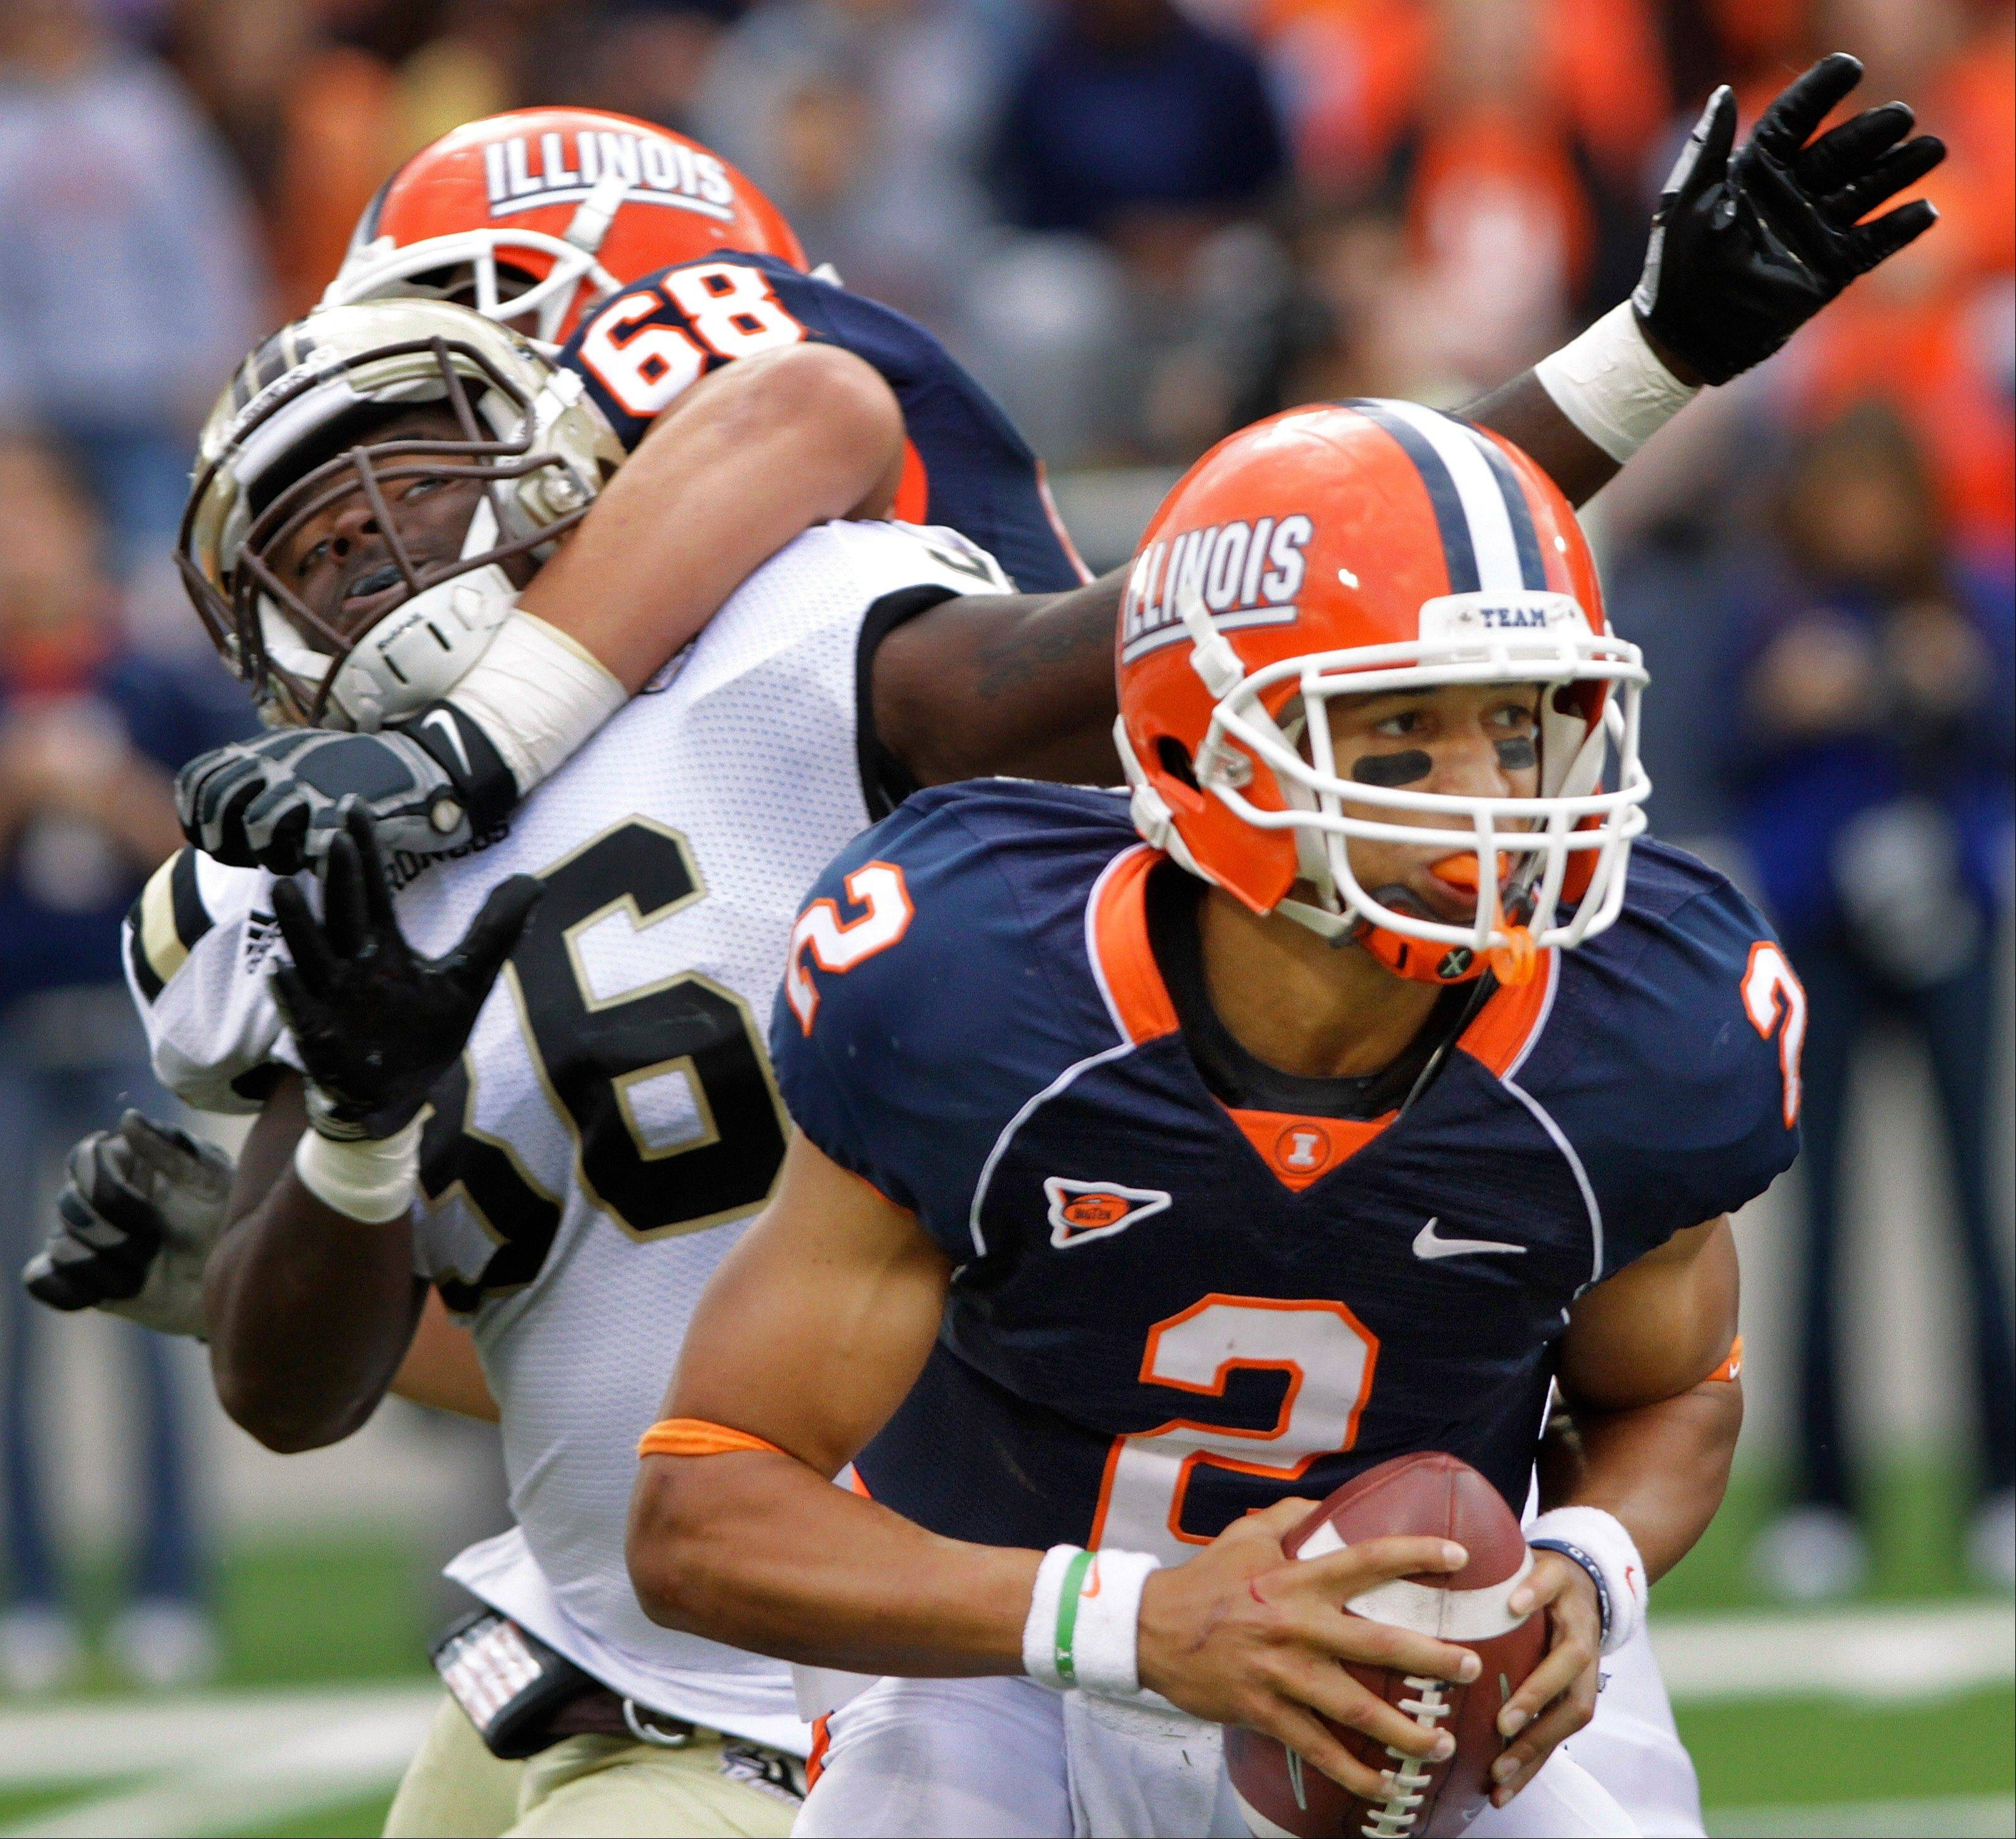 Illinois offensive linesman Simon Cvijanovic (68) blocks Western Michigan defensive end Deauntay Legrier (36) while Illinois quarterback Nathan Scheelhaase (2) looks to pass last week in Champaign.